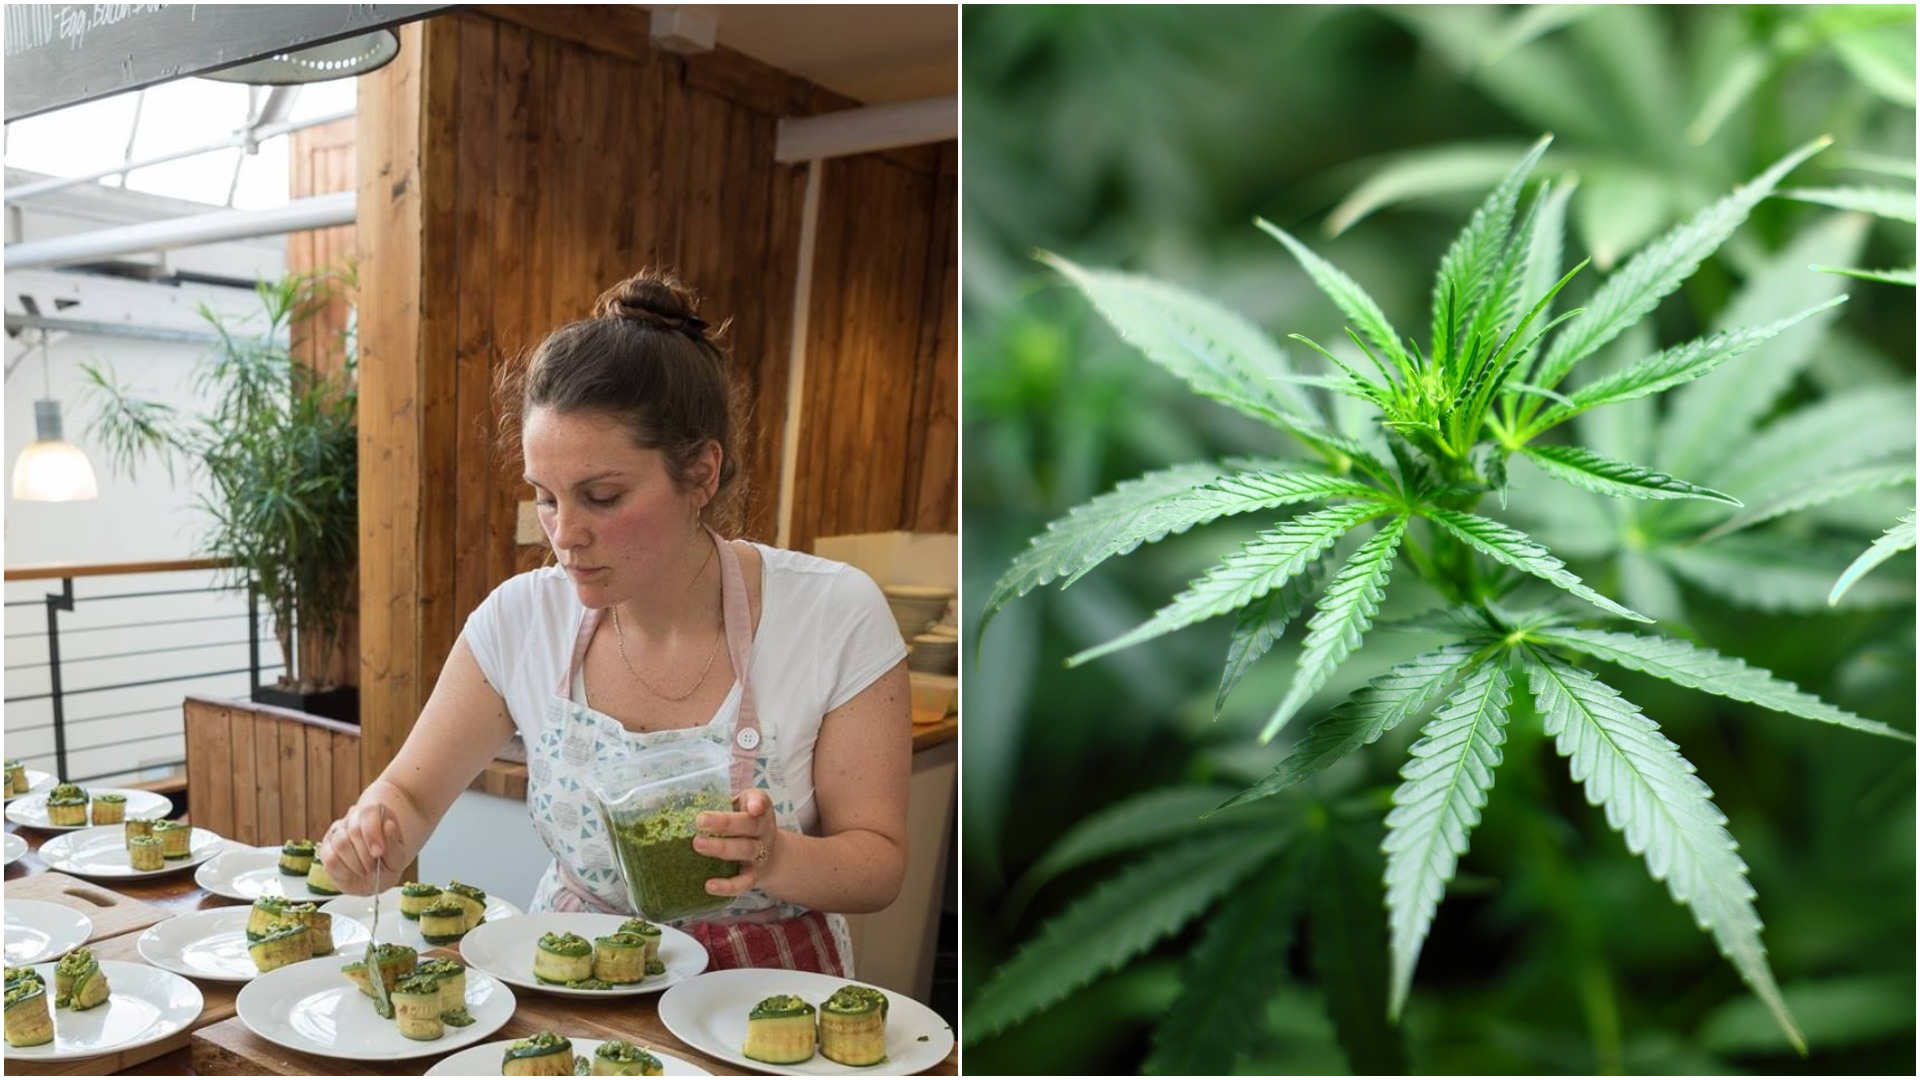 UK's first cannabis infused restaurant to open in Brighton | The Argus